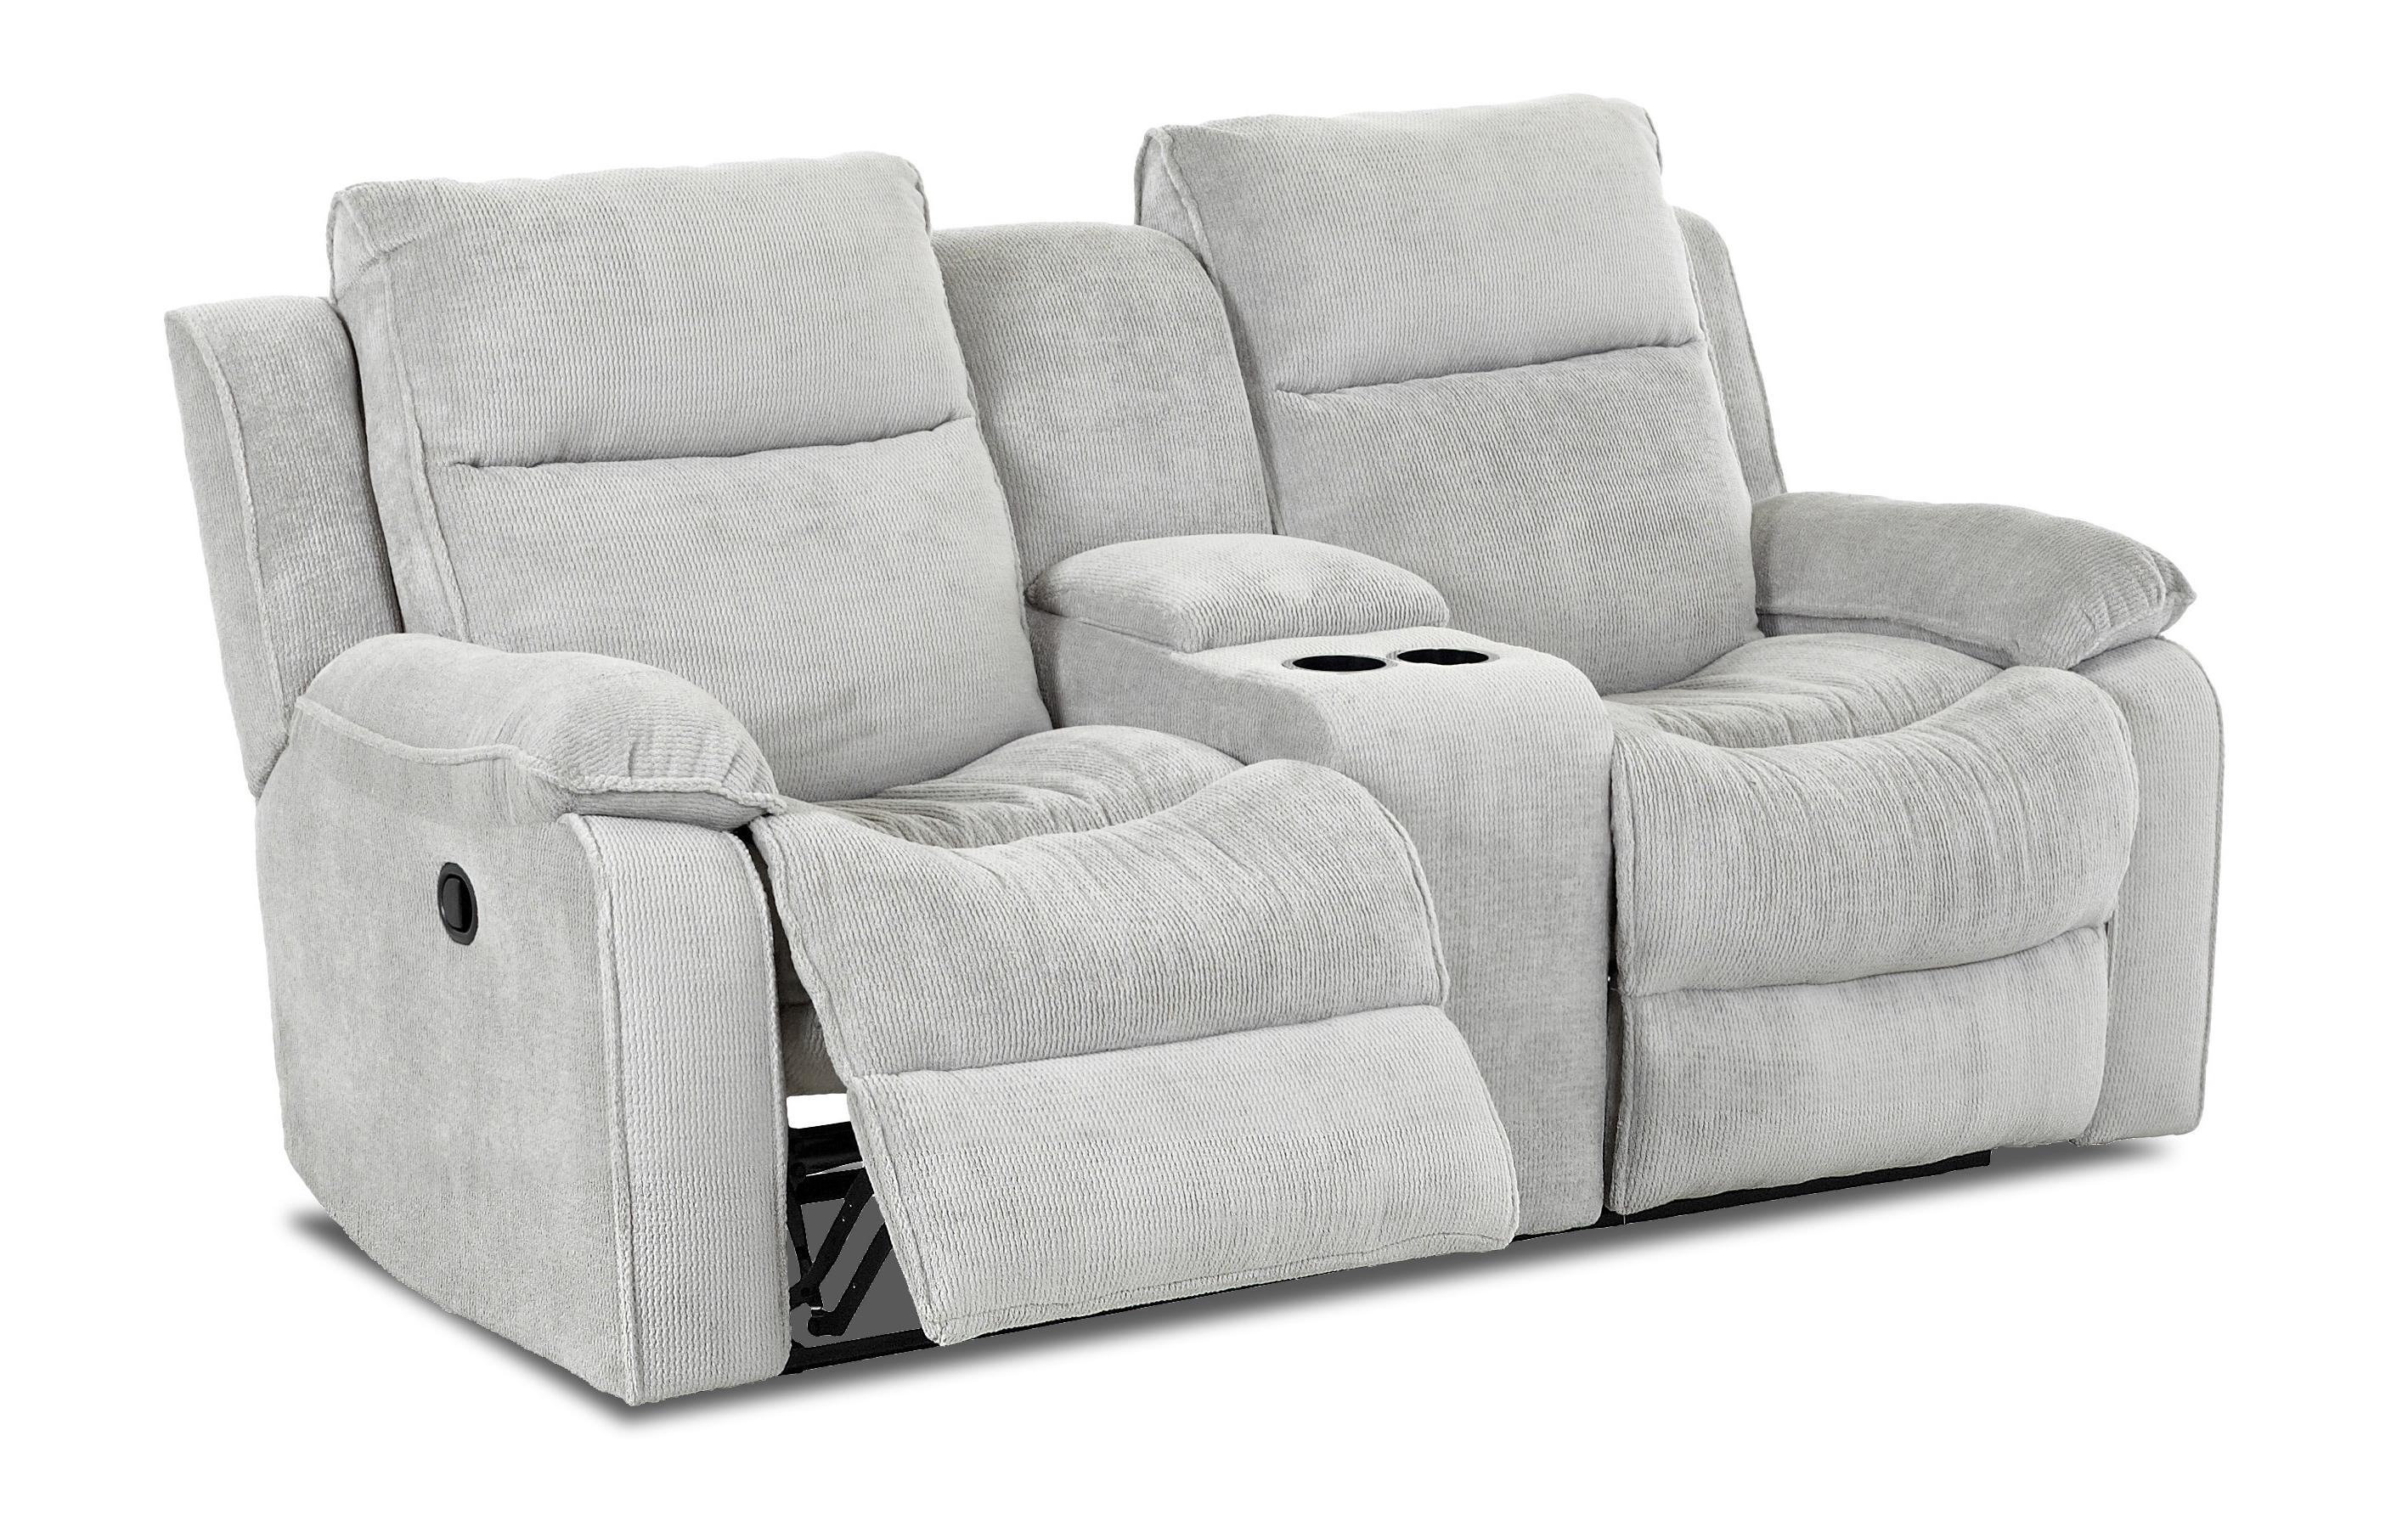 Castaway Casual Power Reclining Loveseat With Console By Klaussner Wolf Furniture